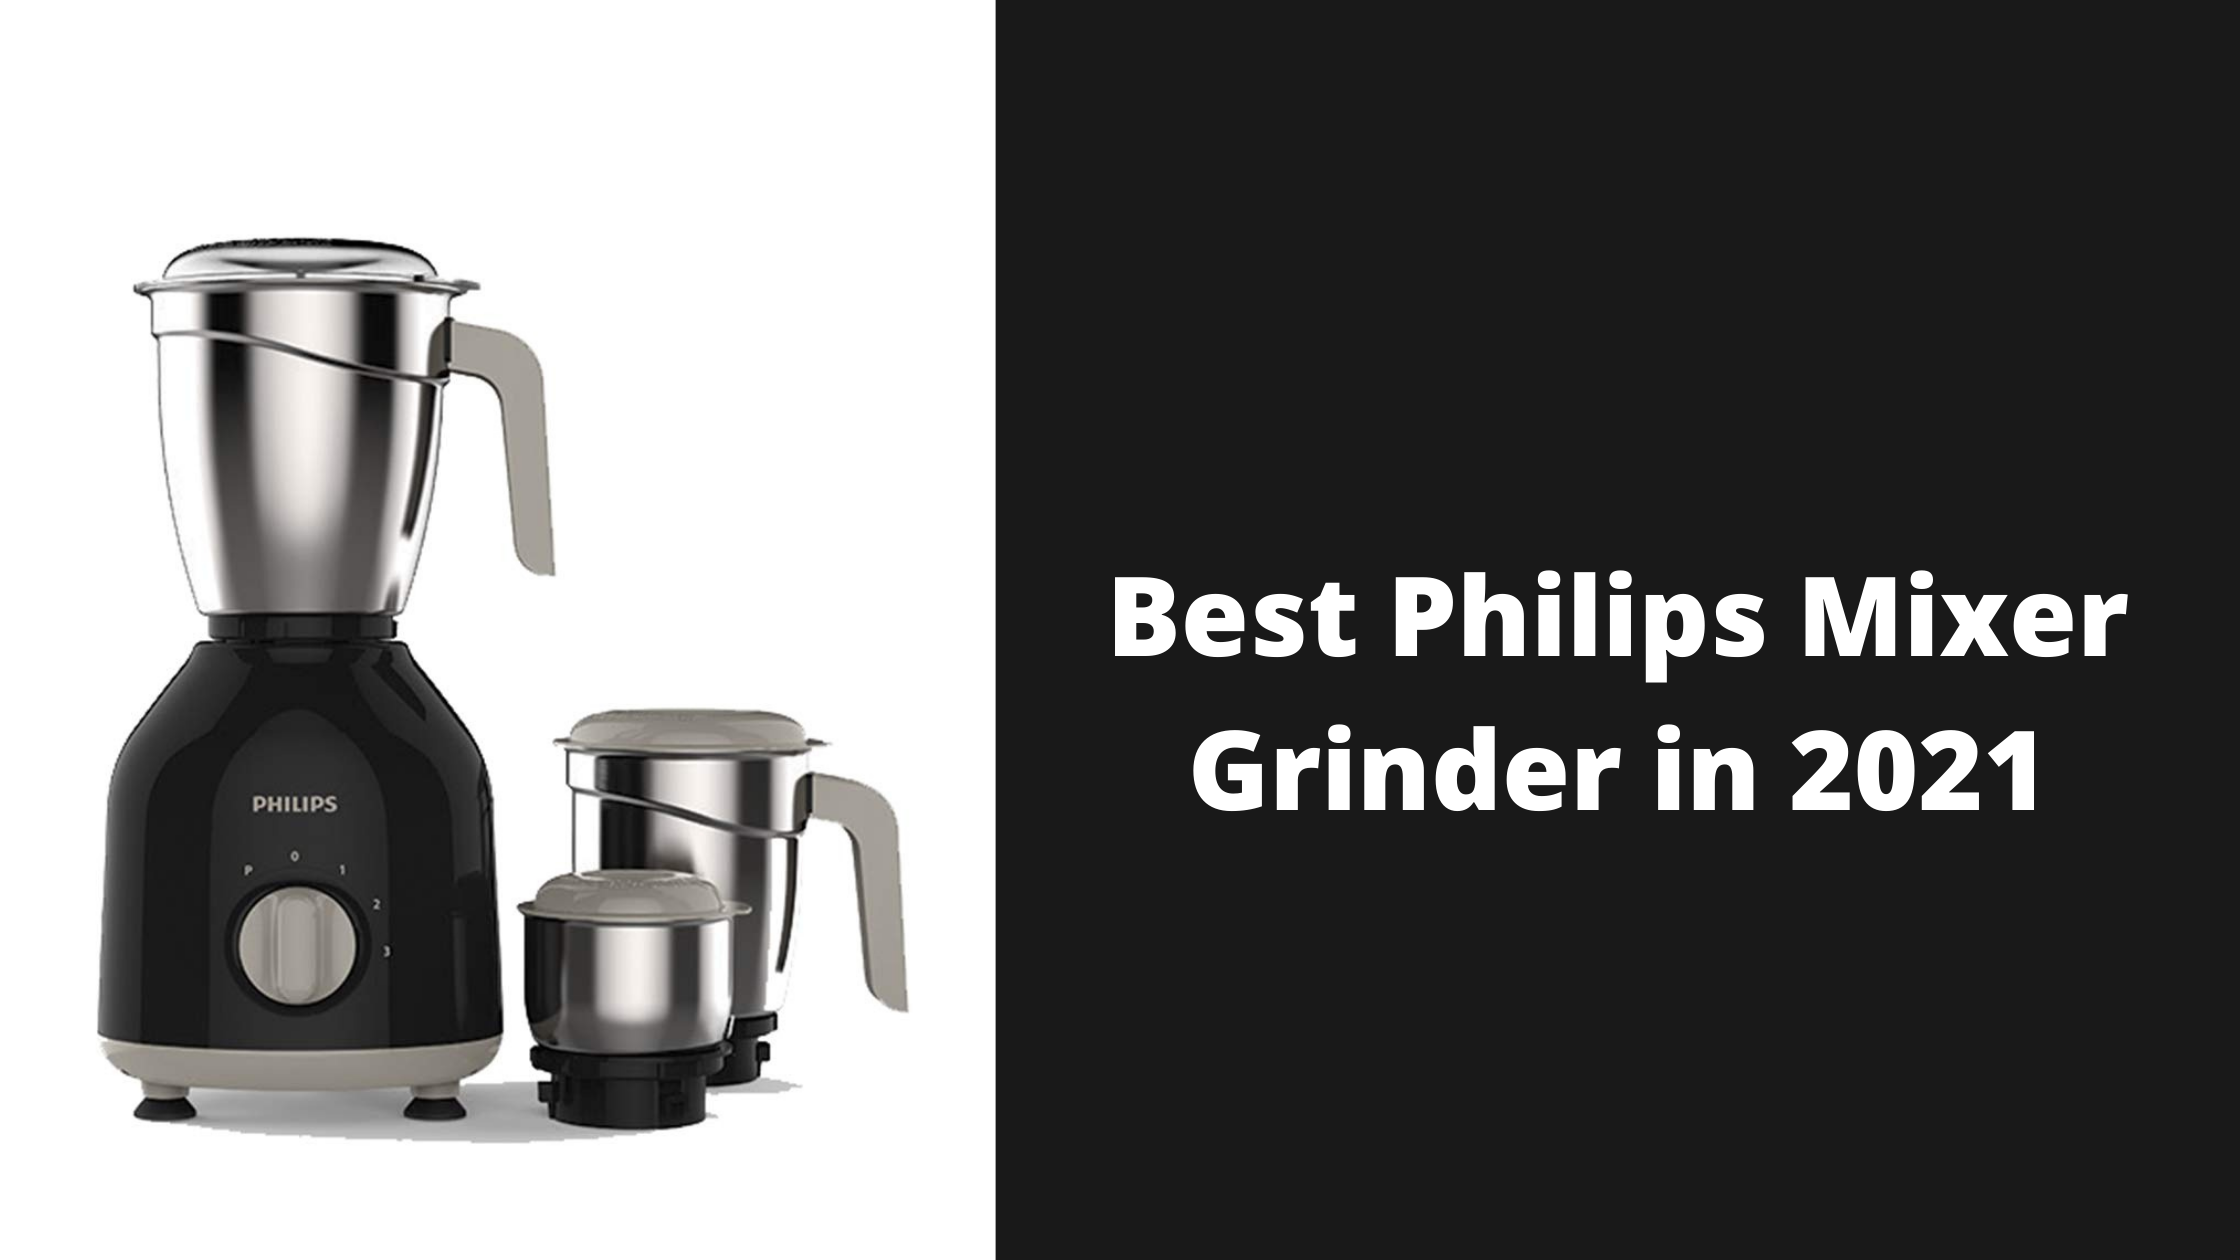 Best Philips Mixer Grinder in 2021